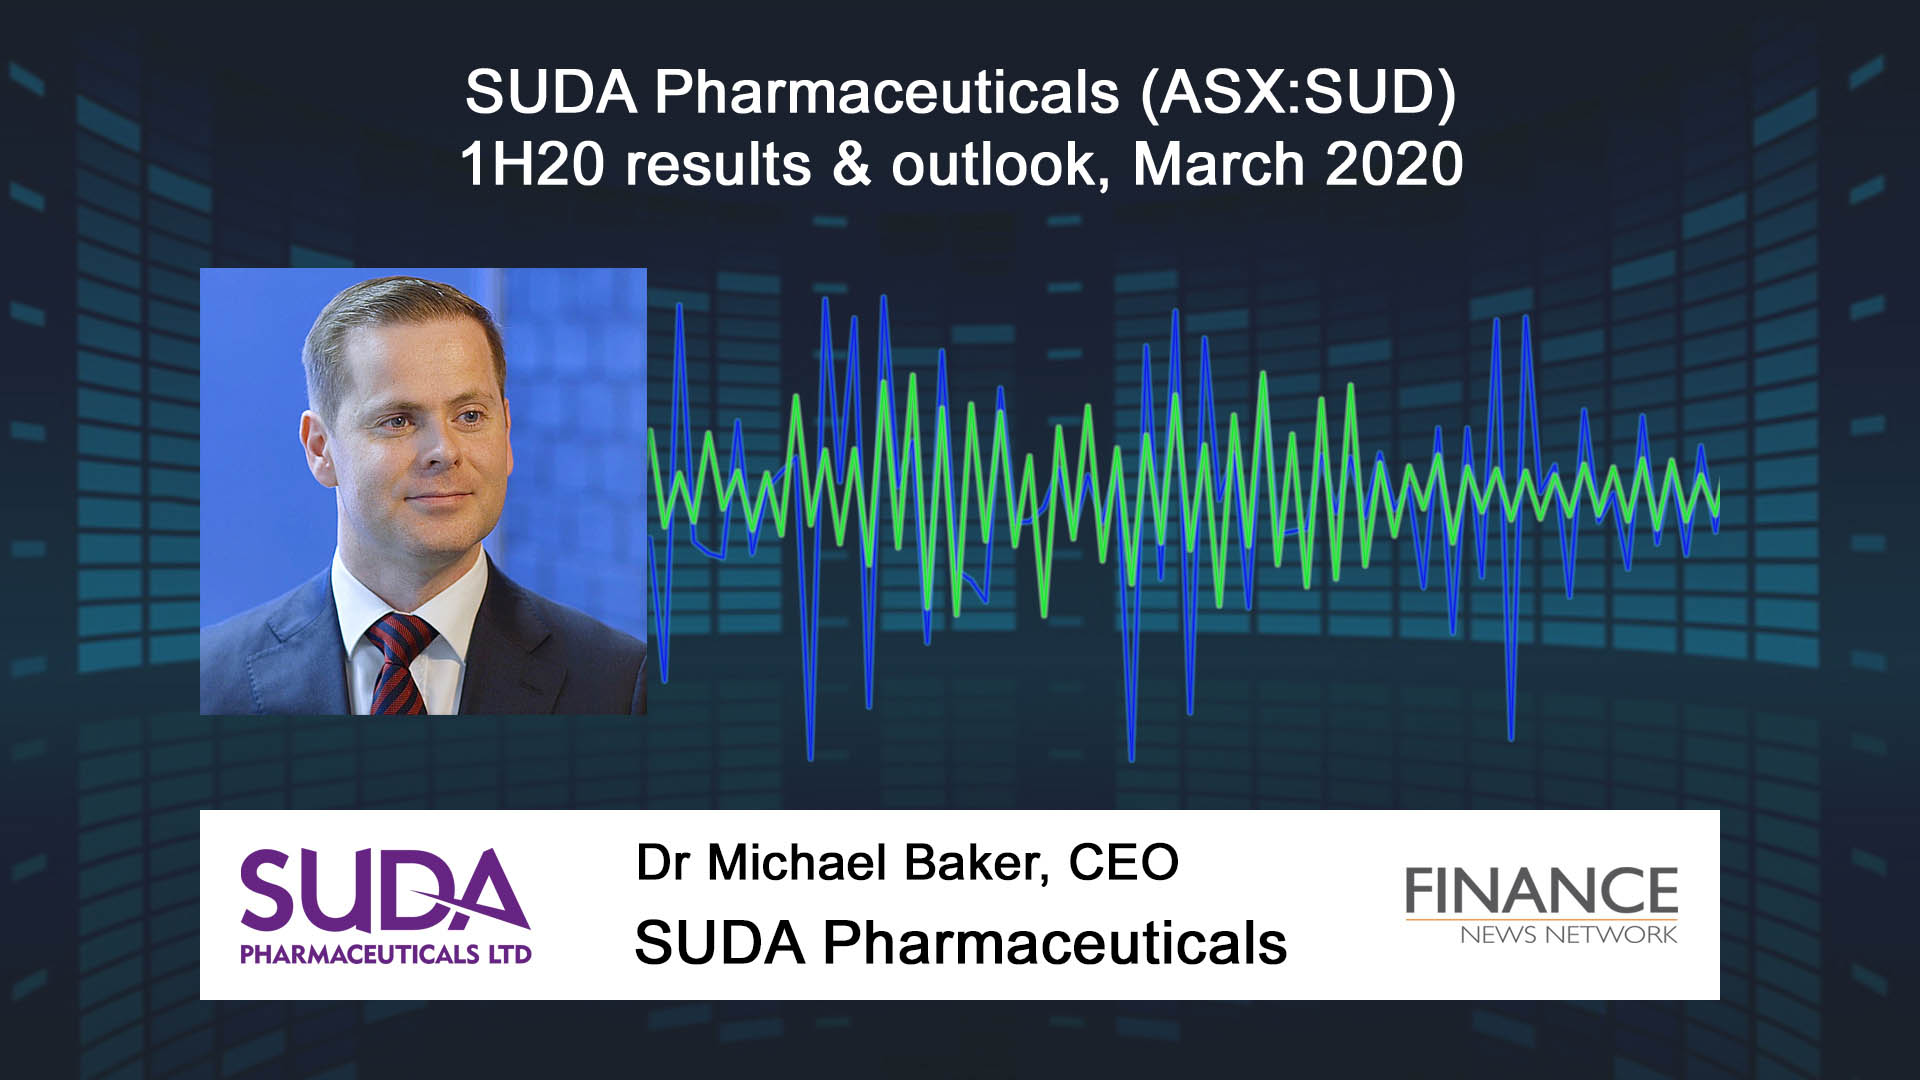 SUDA Pharmaceuticals (ASX:SUD) 1H20 results & outlook